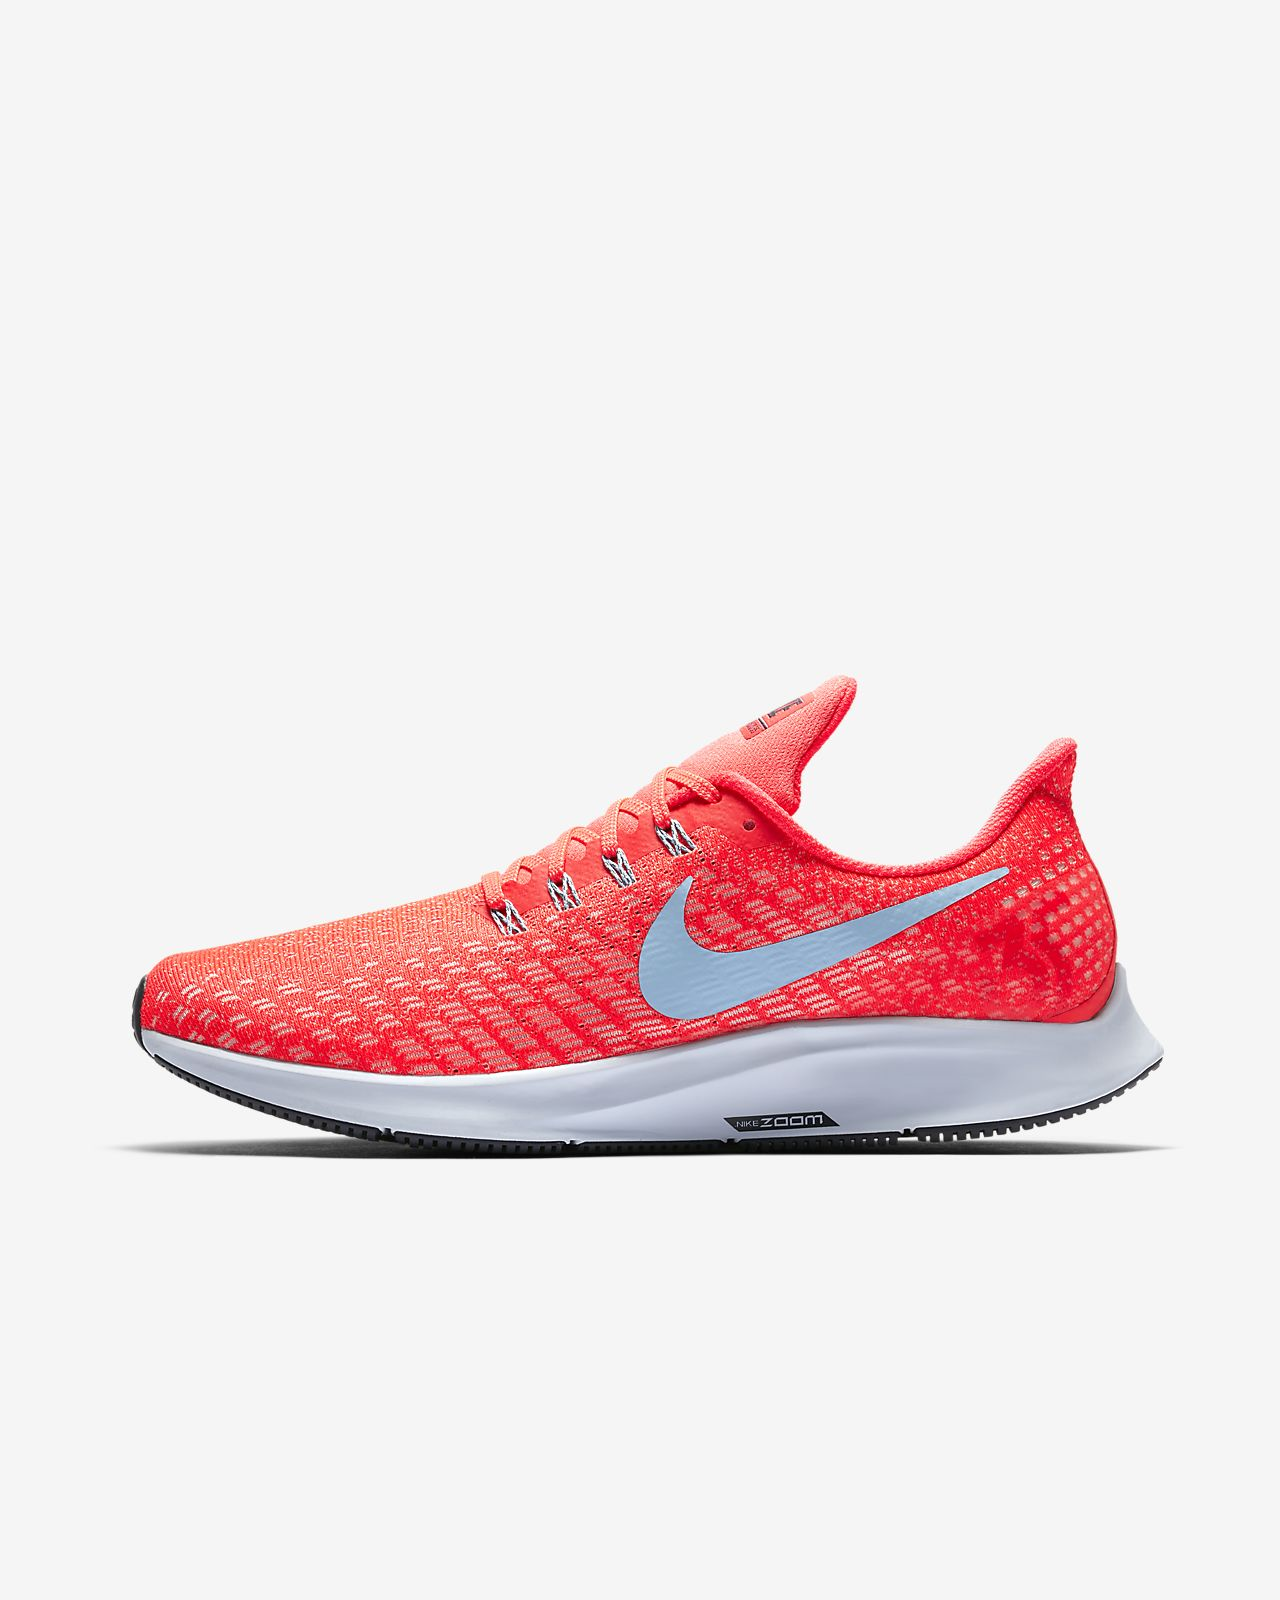 b37d7d9f10cd Nike Air Zoom Pegasus 35 Men s Running Shoe. Nike.com MY